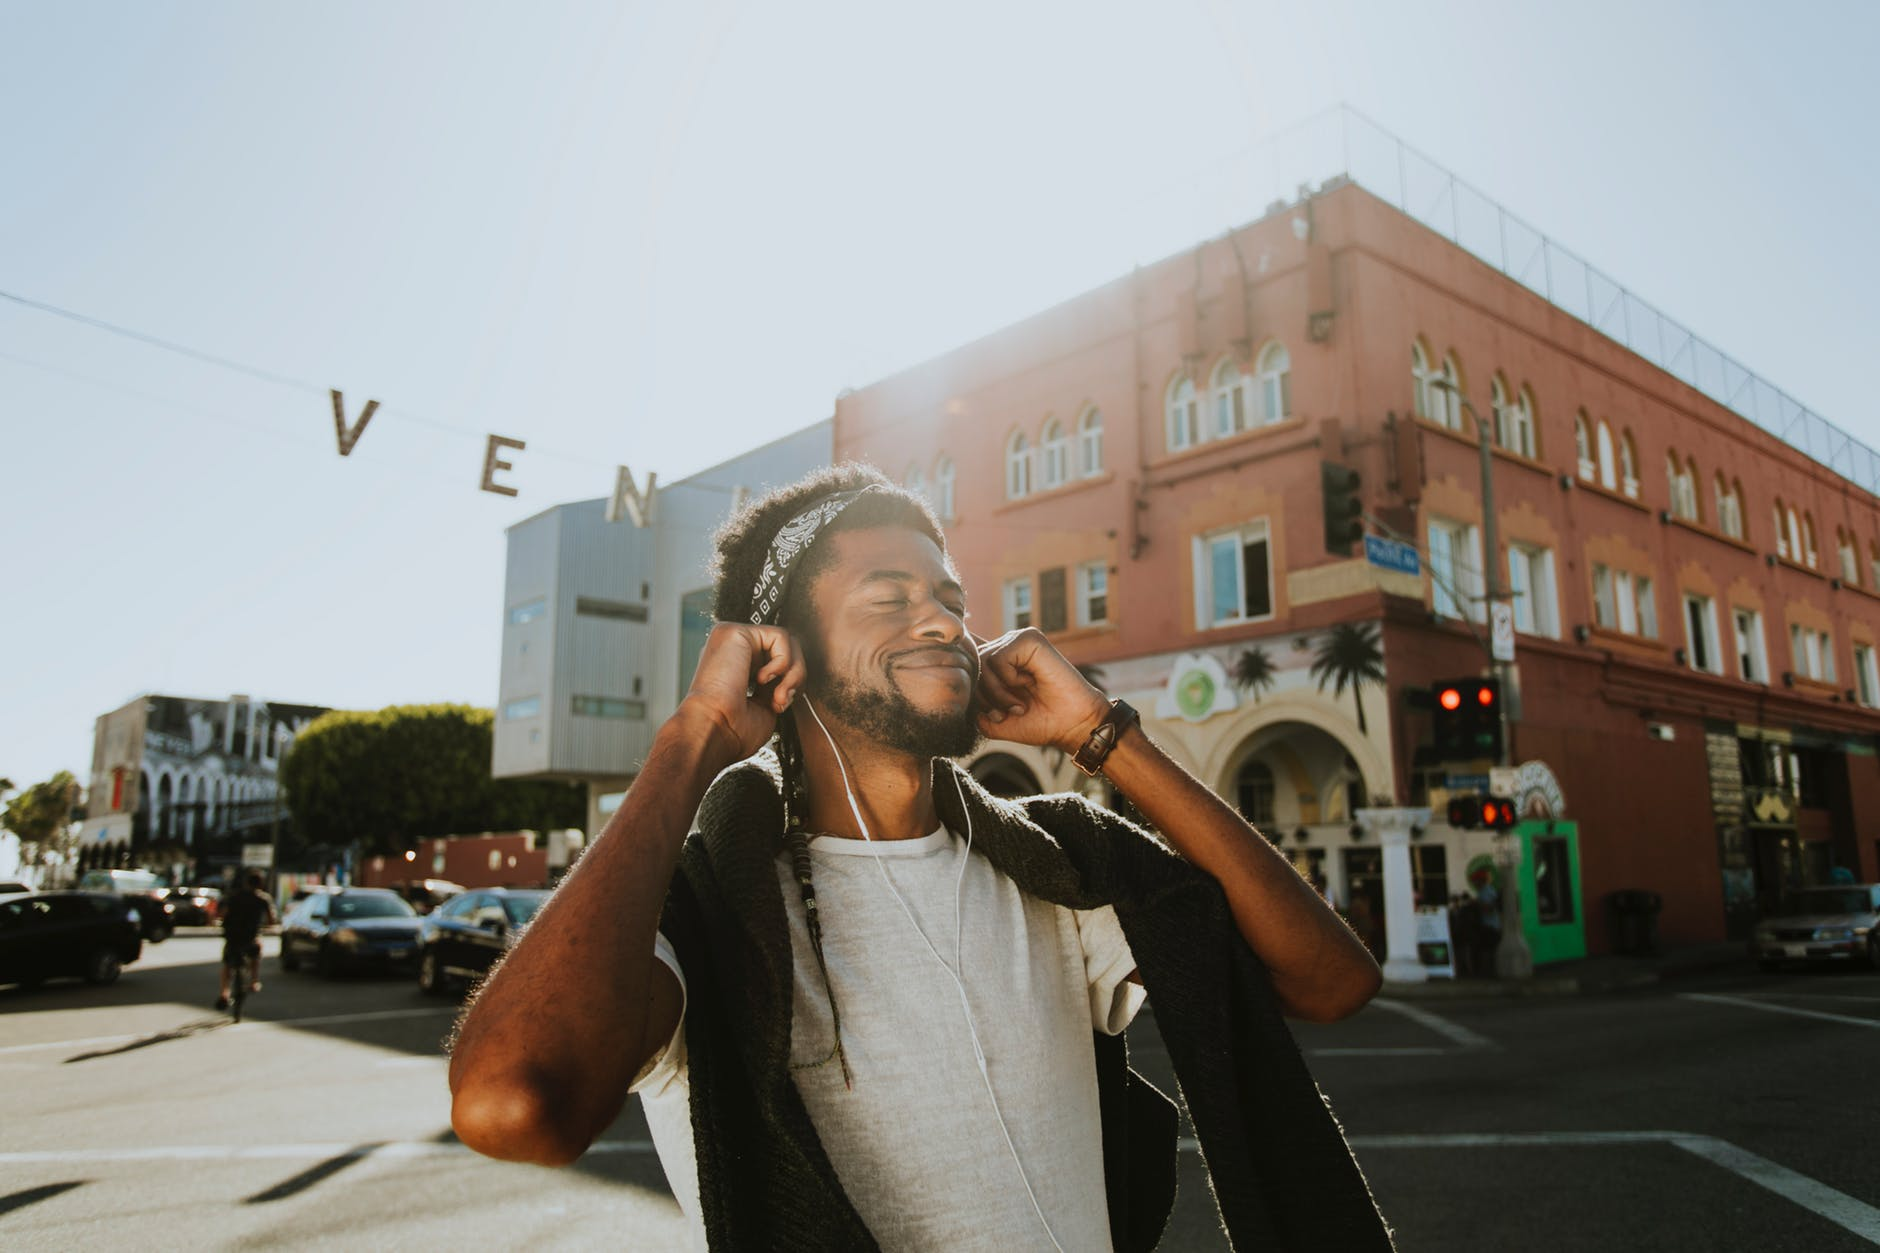 man smiling while listening to music